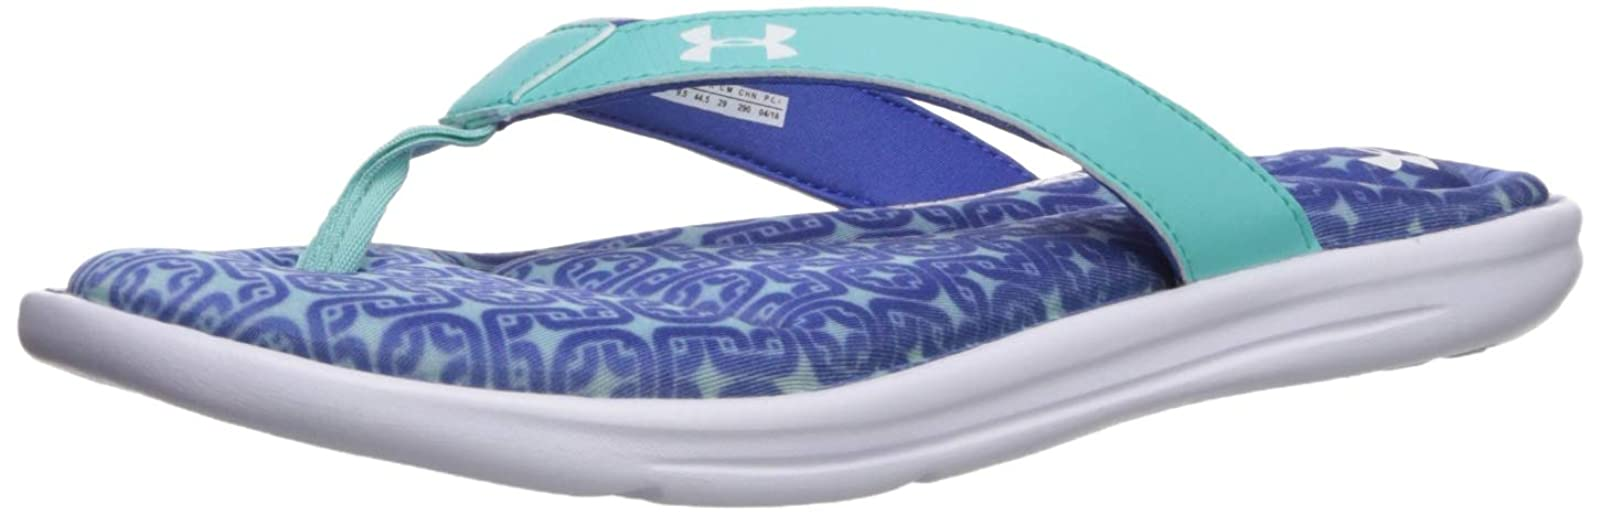 new products fd6d9 c6969 HQ Images of Under Armour Women s Marbella Oval VI Thong Flip-Flop